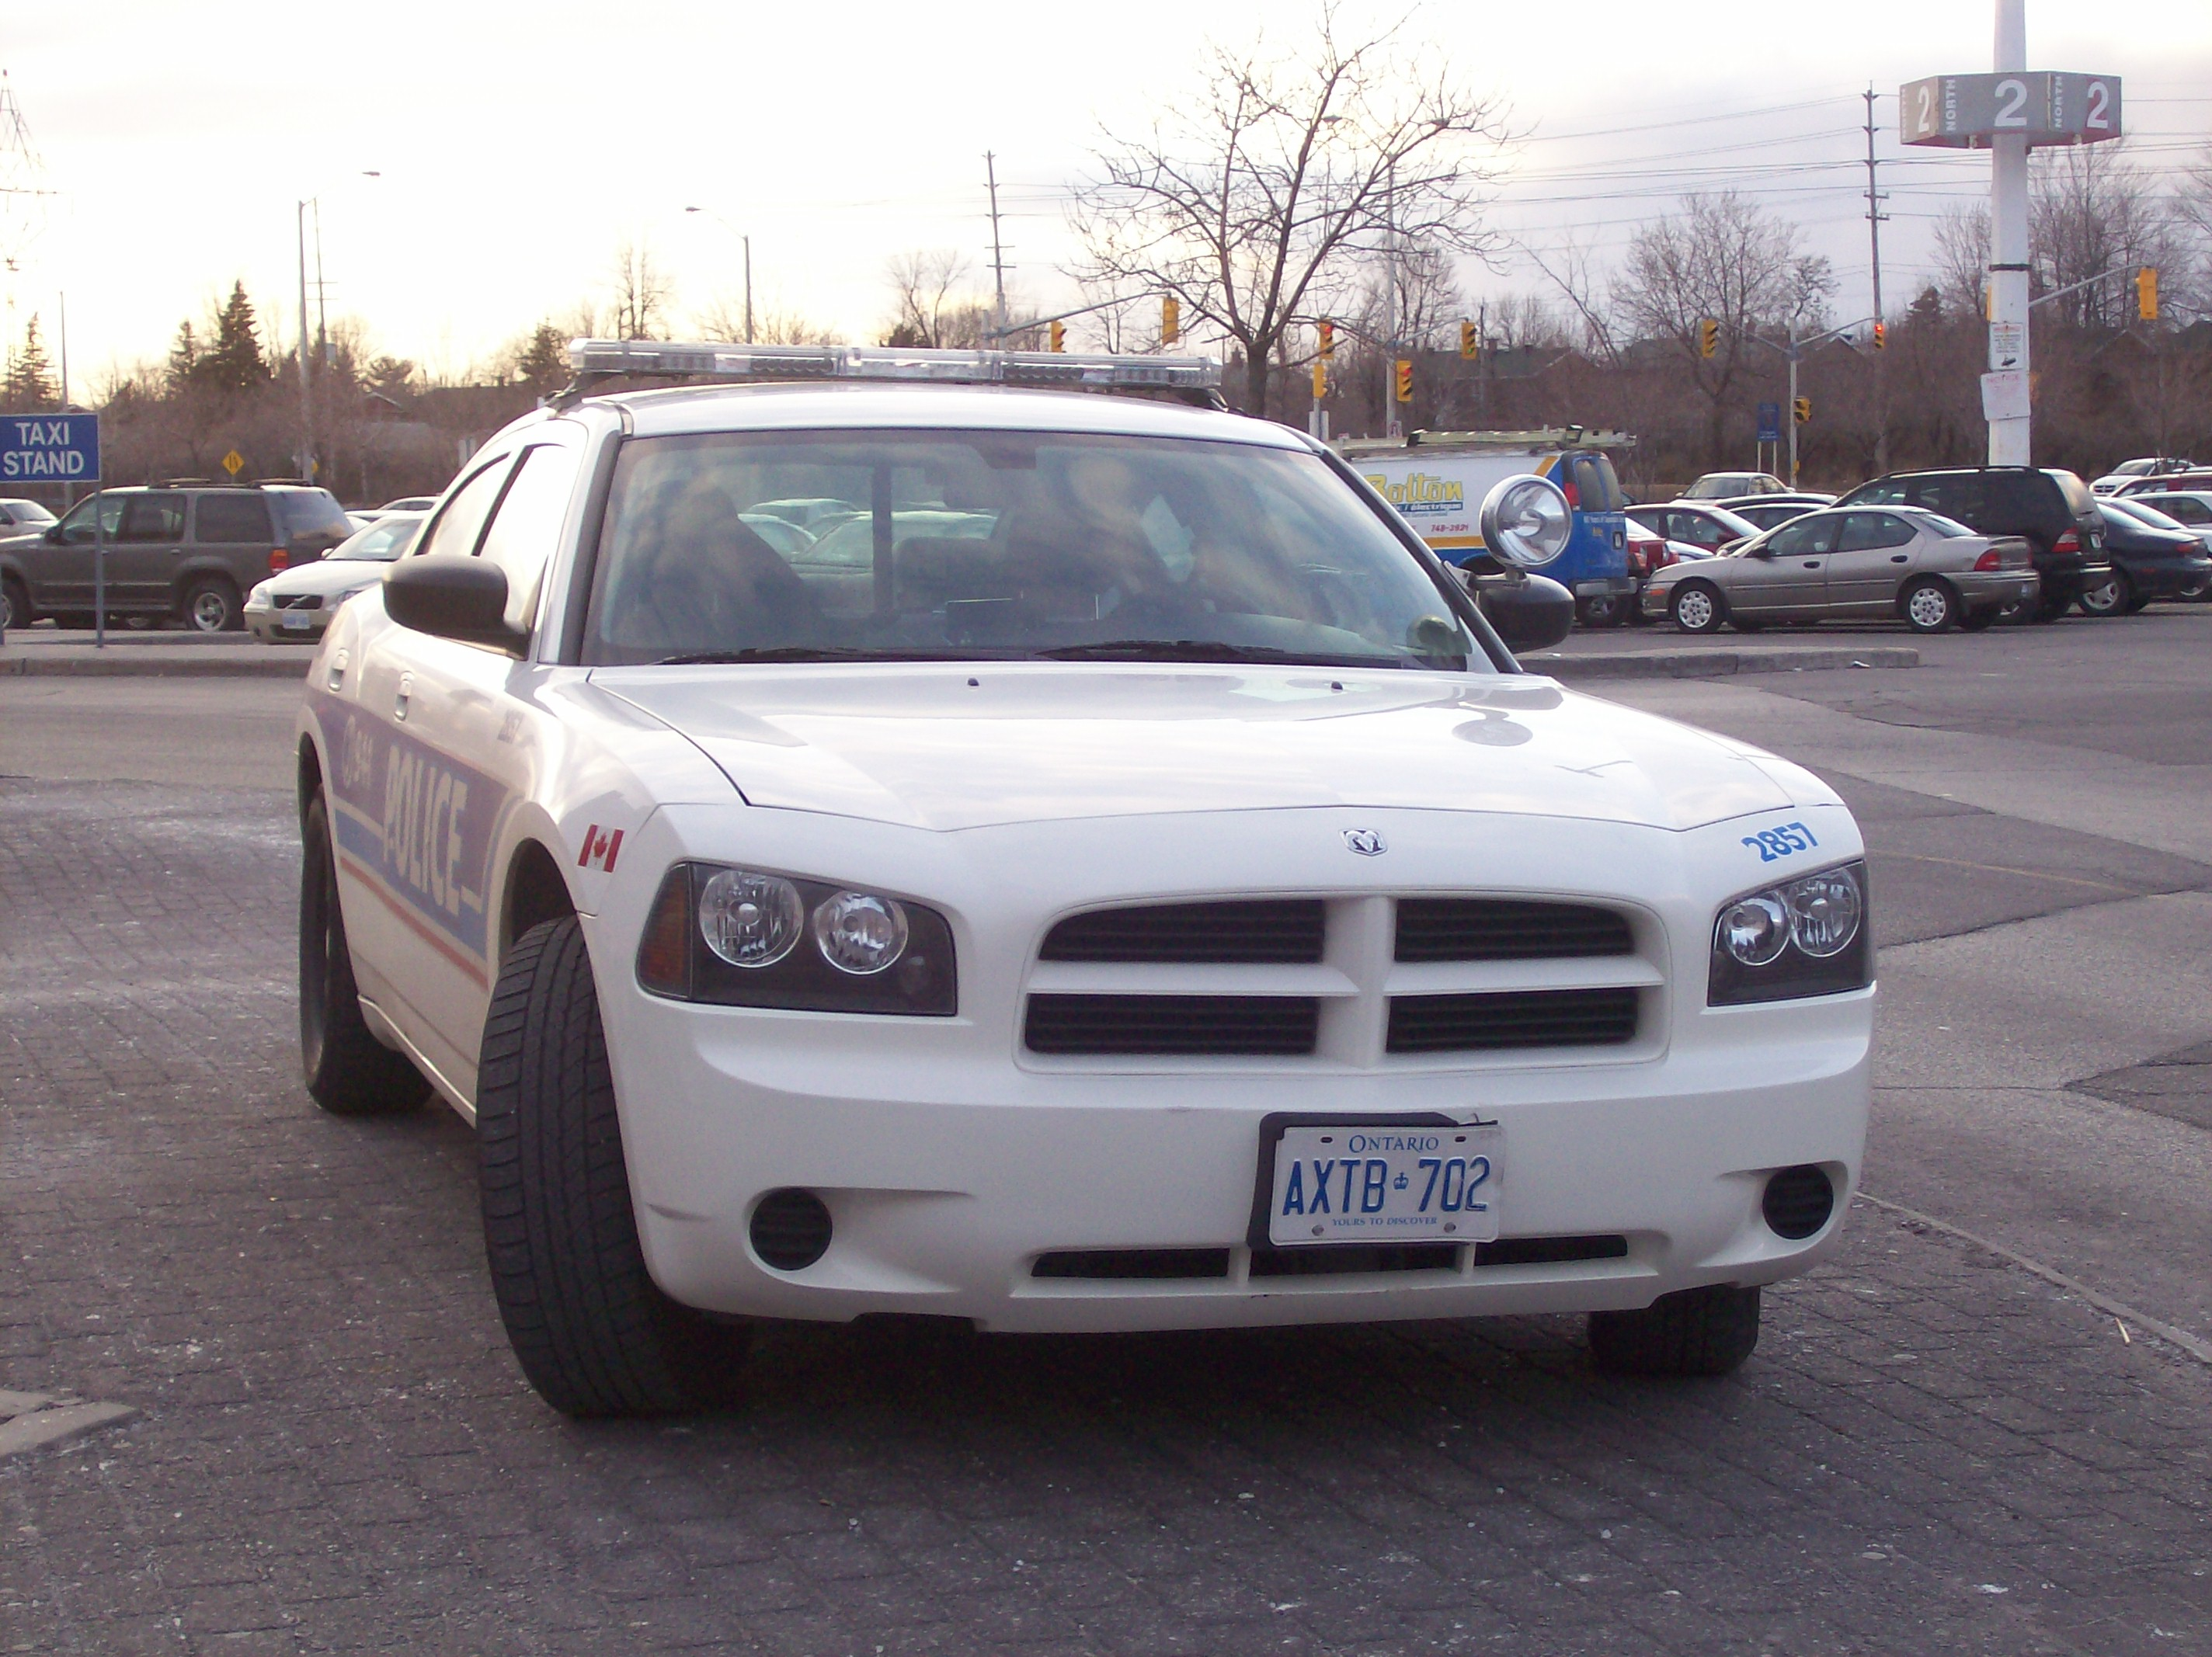 An Ottawa Police Dodge Charger patrol car.